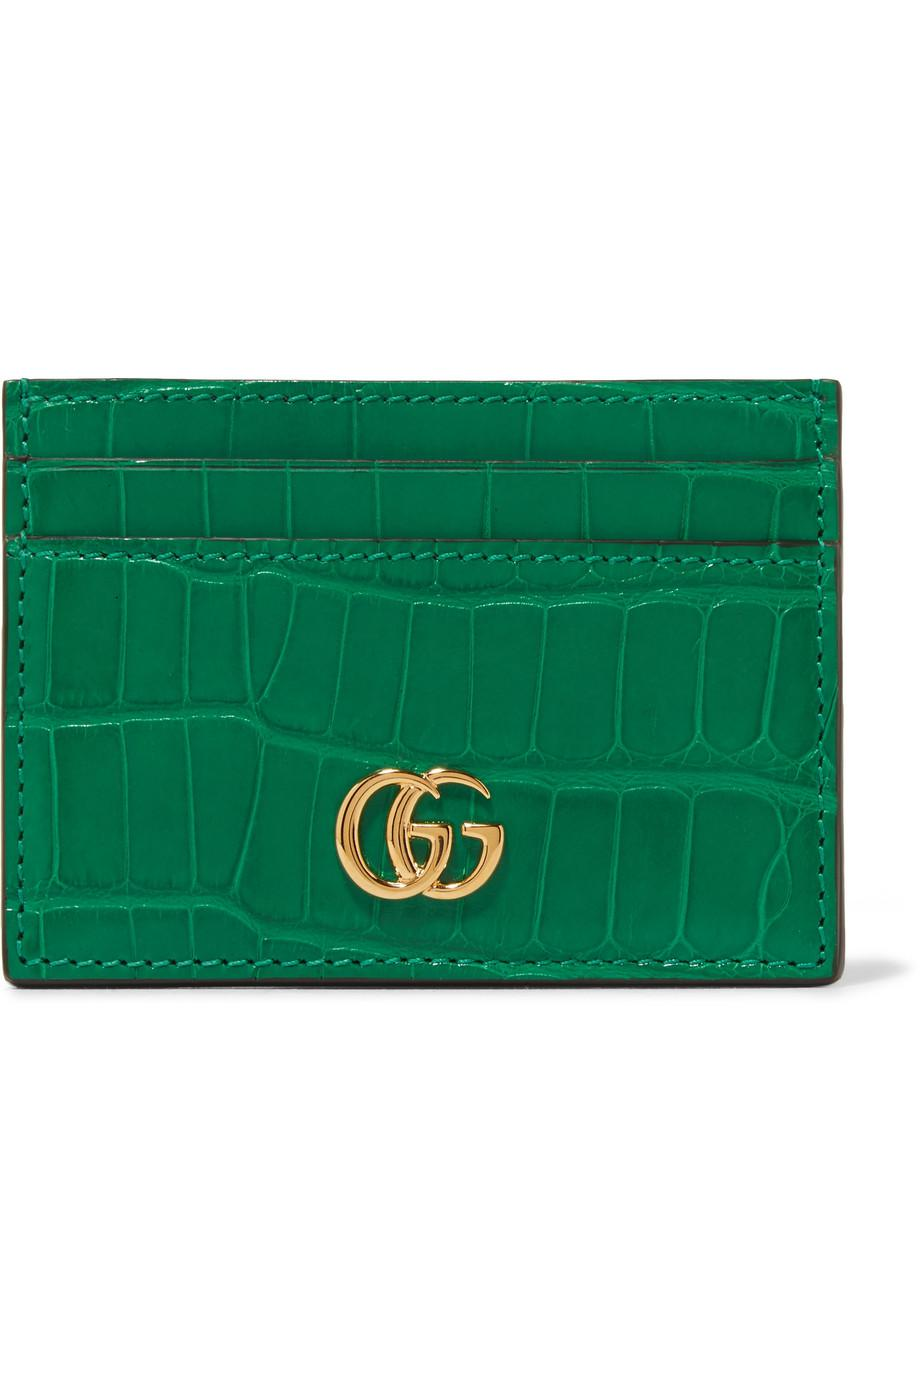 Marmont Petite Alligator Cardholder - Red Gucci ebyPmKgAx